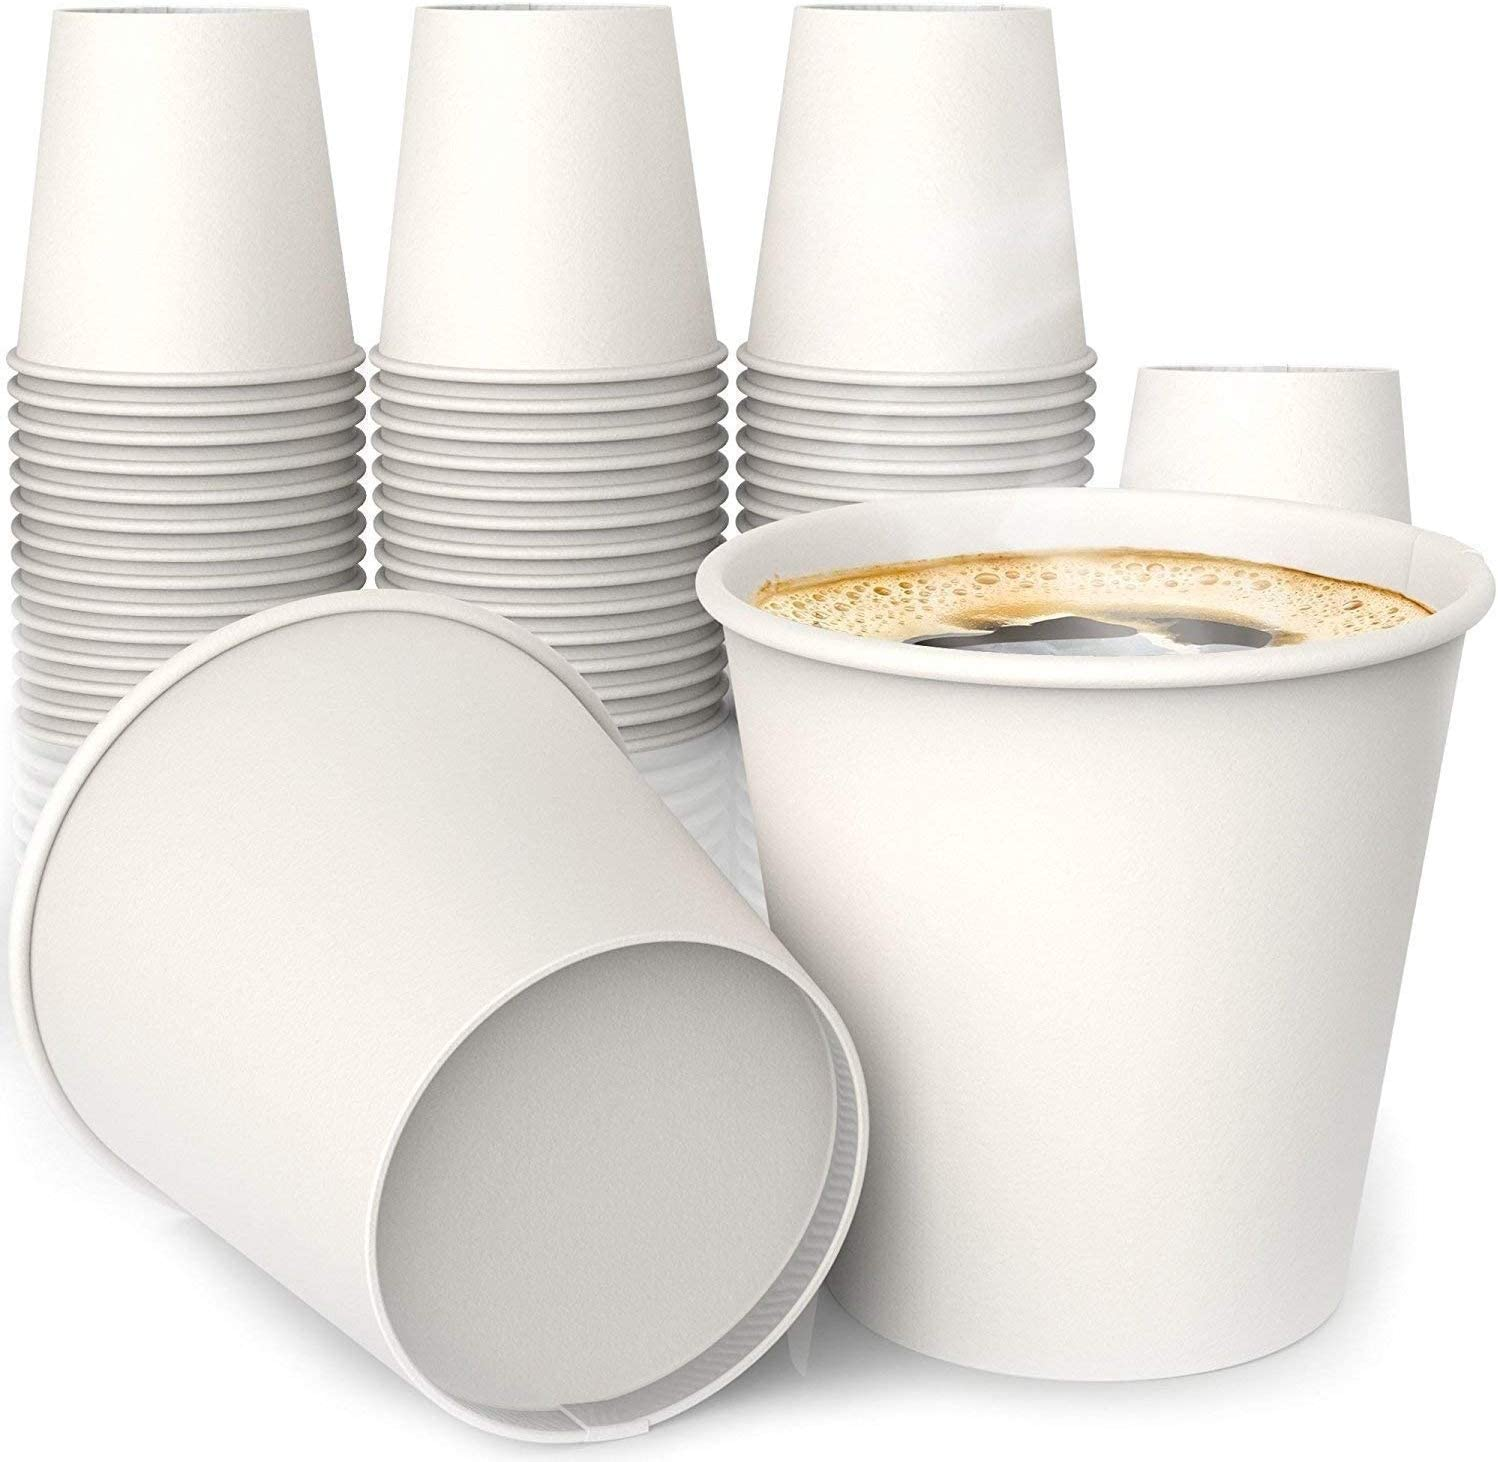 Disposable Tea Or Coffee Paper Cups,Vending Machine Coffee